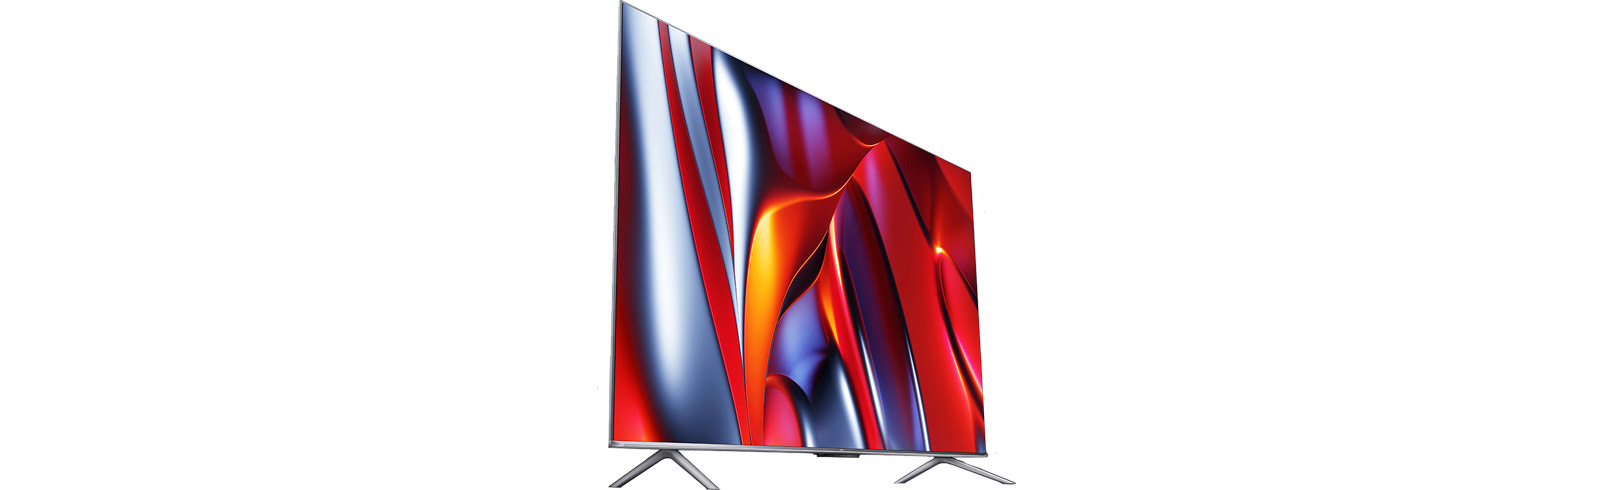 """The 85"""" Hisense Vidda 85V1F-S with a 120Hz refresh rate is launched in China as part of the V1F-S series"""